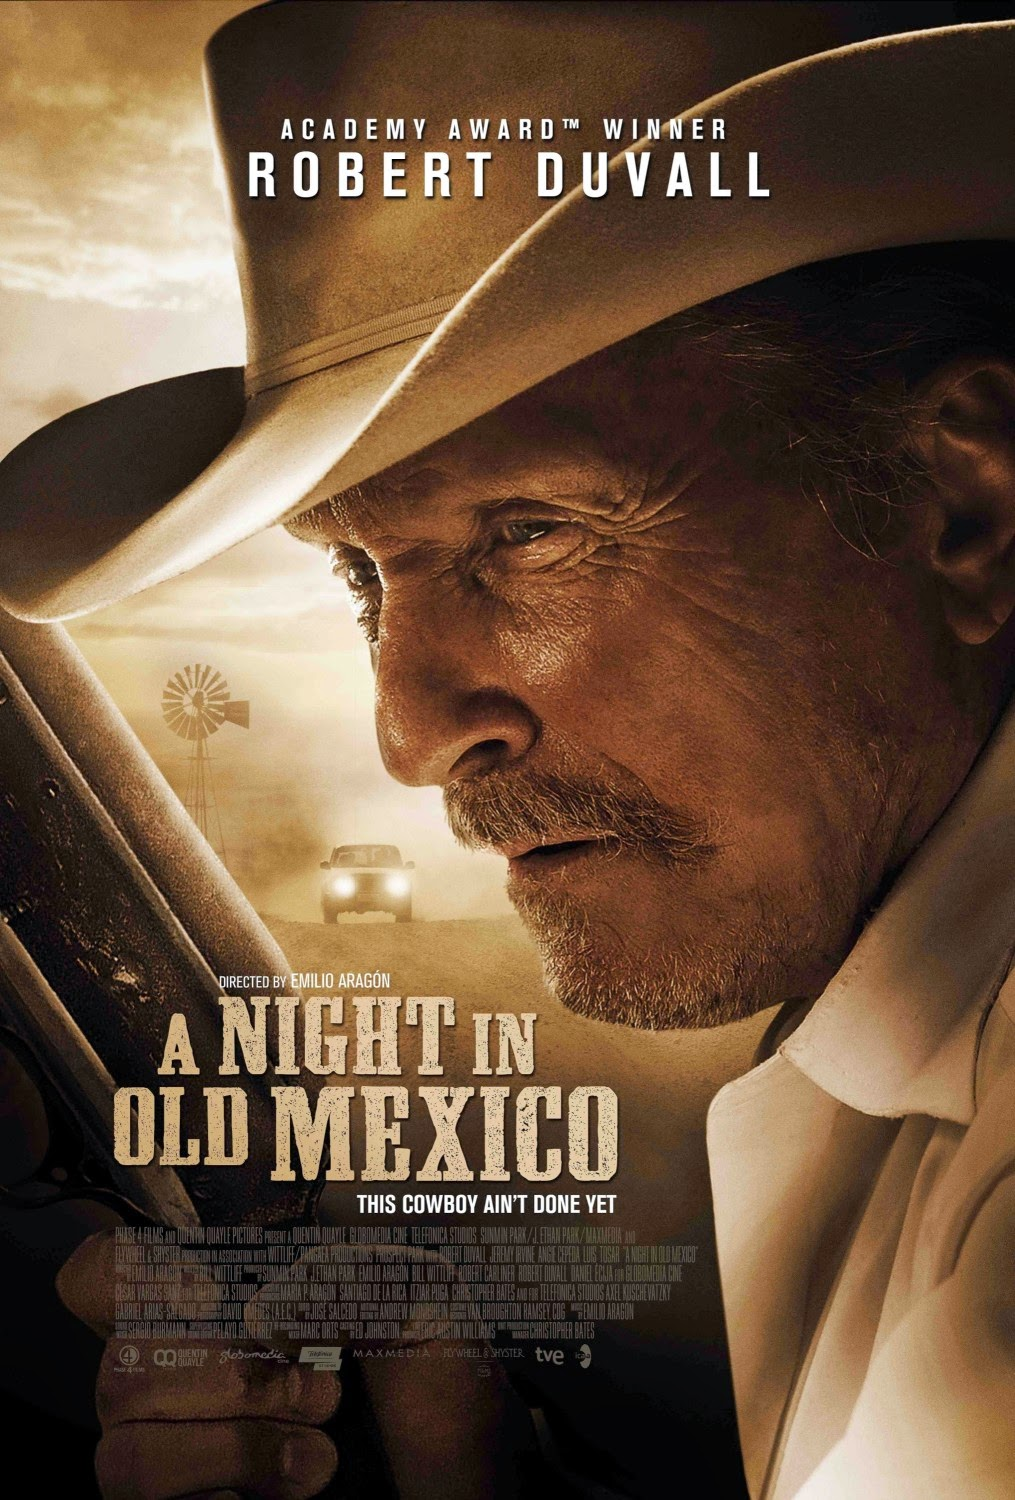 A Night In Old Mexico — 3 out of 5 stars